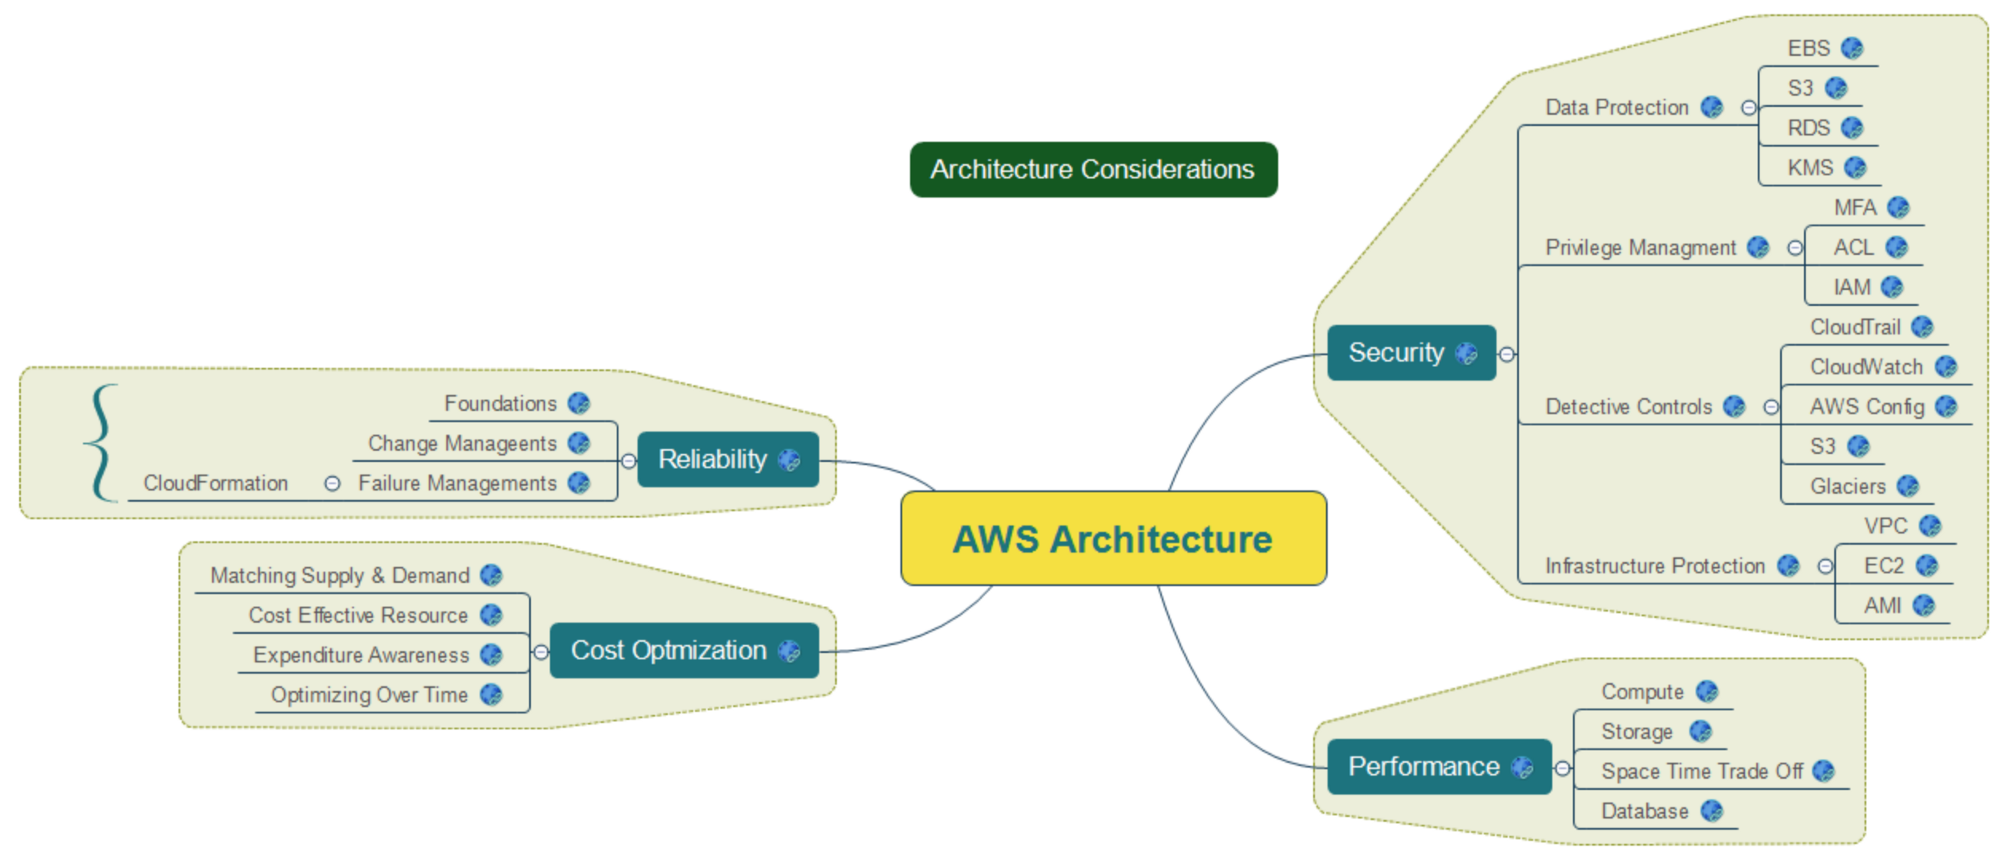 Architecting Security & Governance Across your AWS Accounts